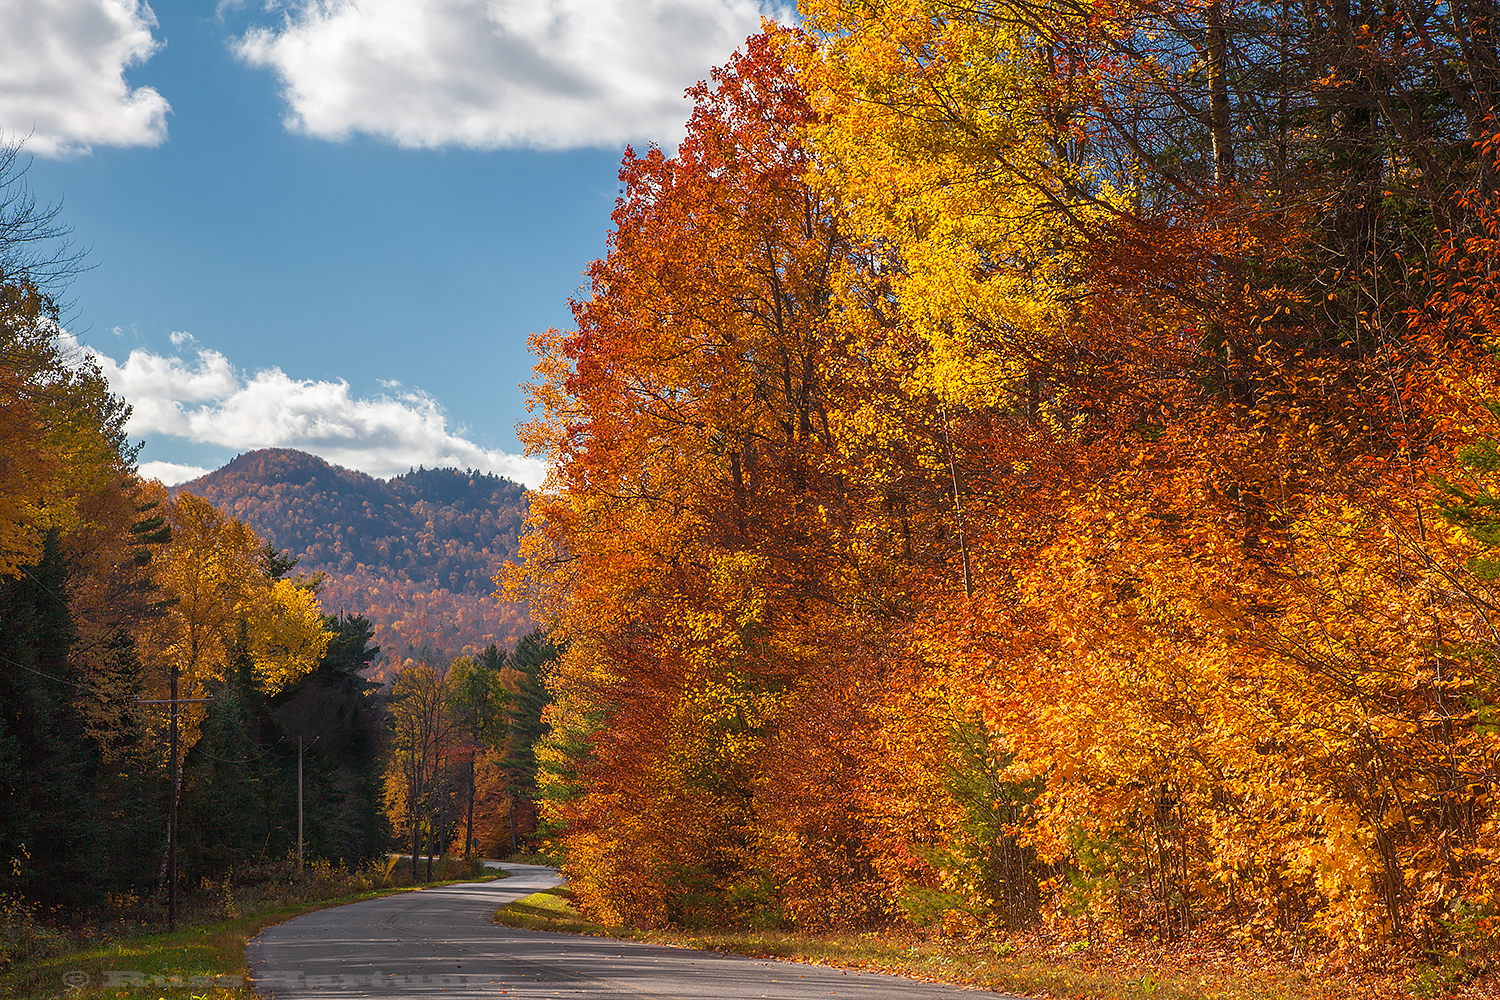 A winding backroad during peak foliage season.